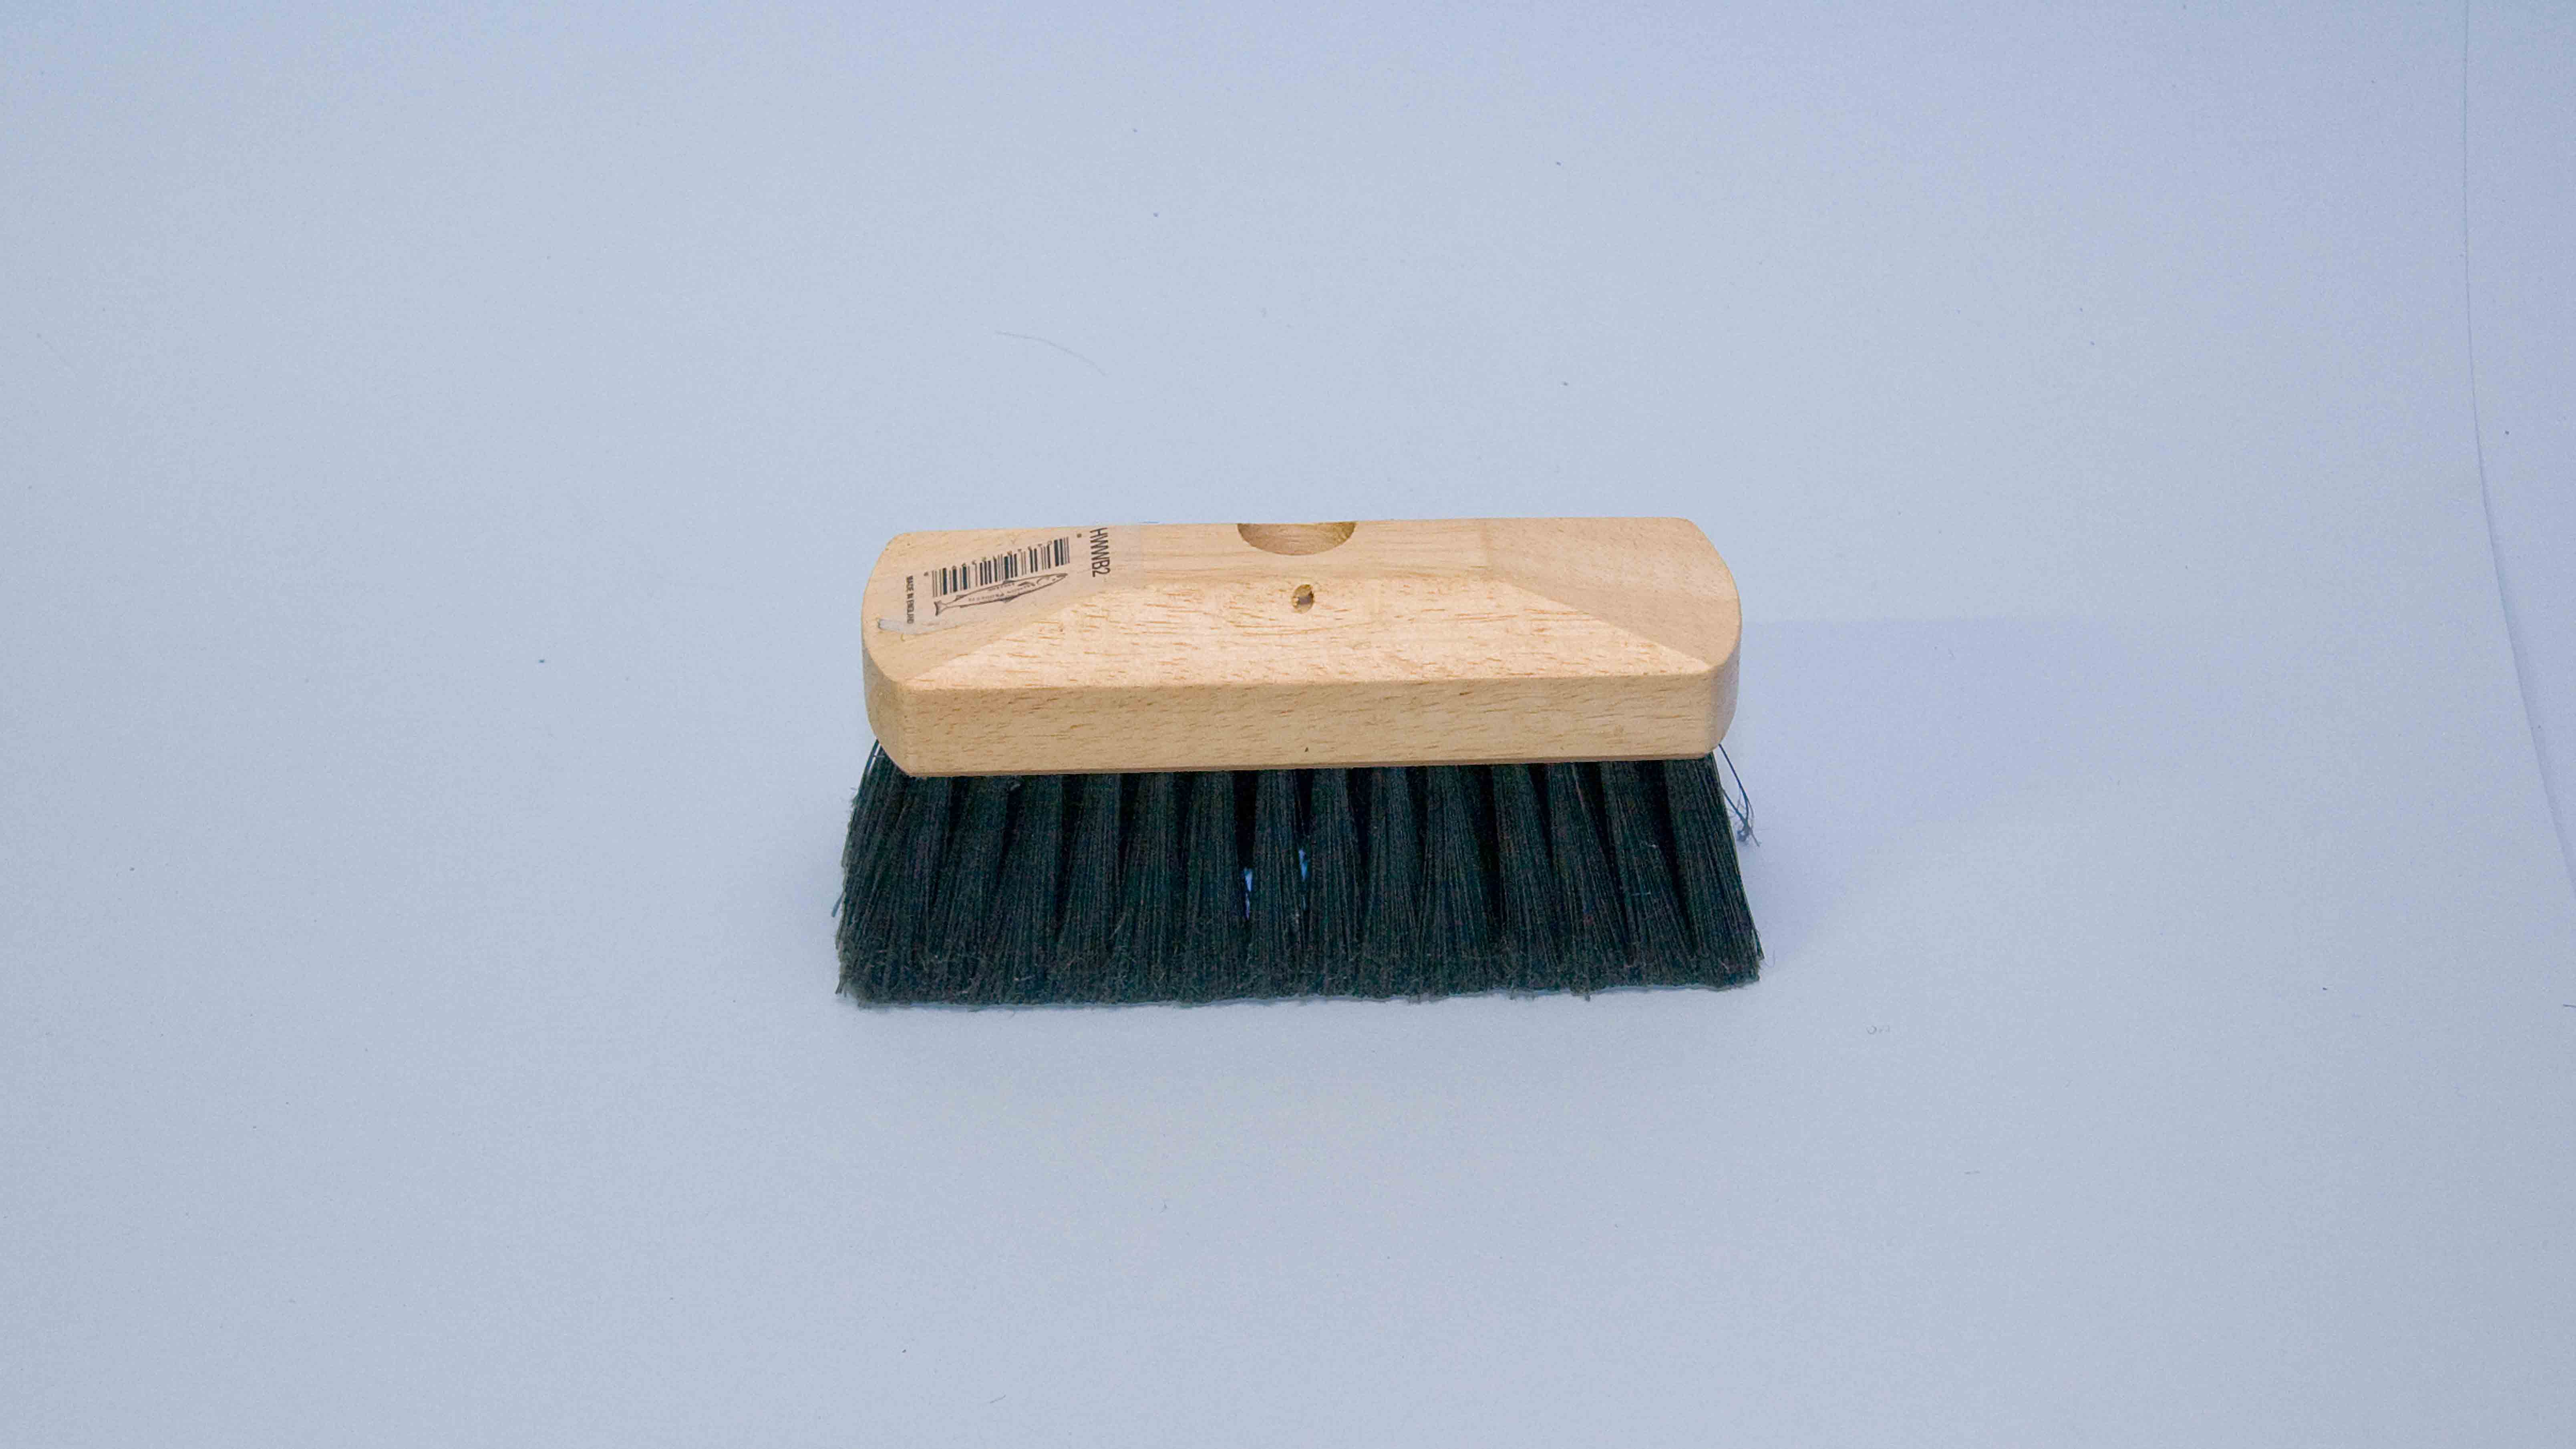 WINDOW BRUSH NYLON EA. BEST SELLING PRODUCTAVAILABLE INDIVIDUALLY OR BOXED  NORMALLY BOXED IN 12'SASSEMBLY OPTIONS AVAILABLE  - CLICK ON PRODUCT FOR OPTIONS#ASSY0060 - ASSEMBLE 2 X BOLTS TO BRUSH HEAD#ASSY0100 - WITH SCREWED ON 24MM PLASTIC SOCKET#ASSY100